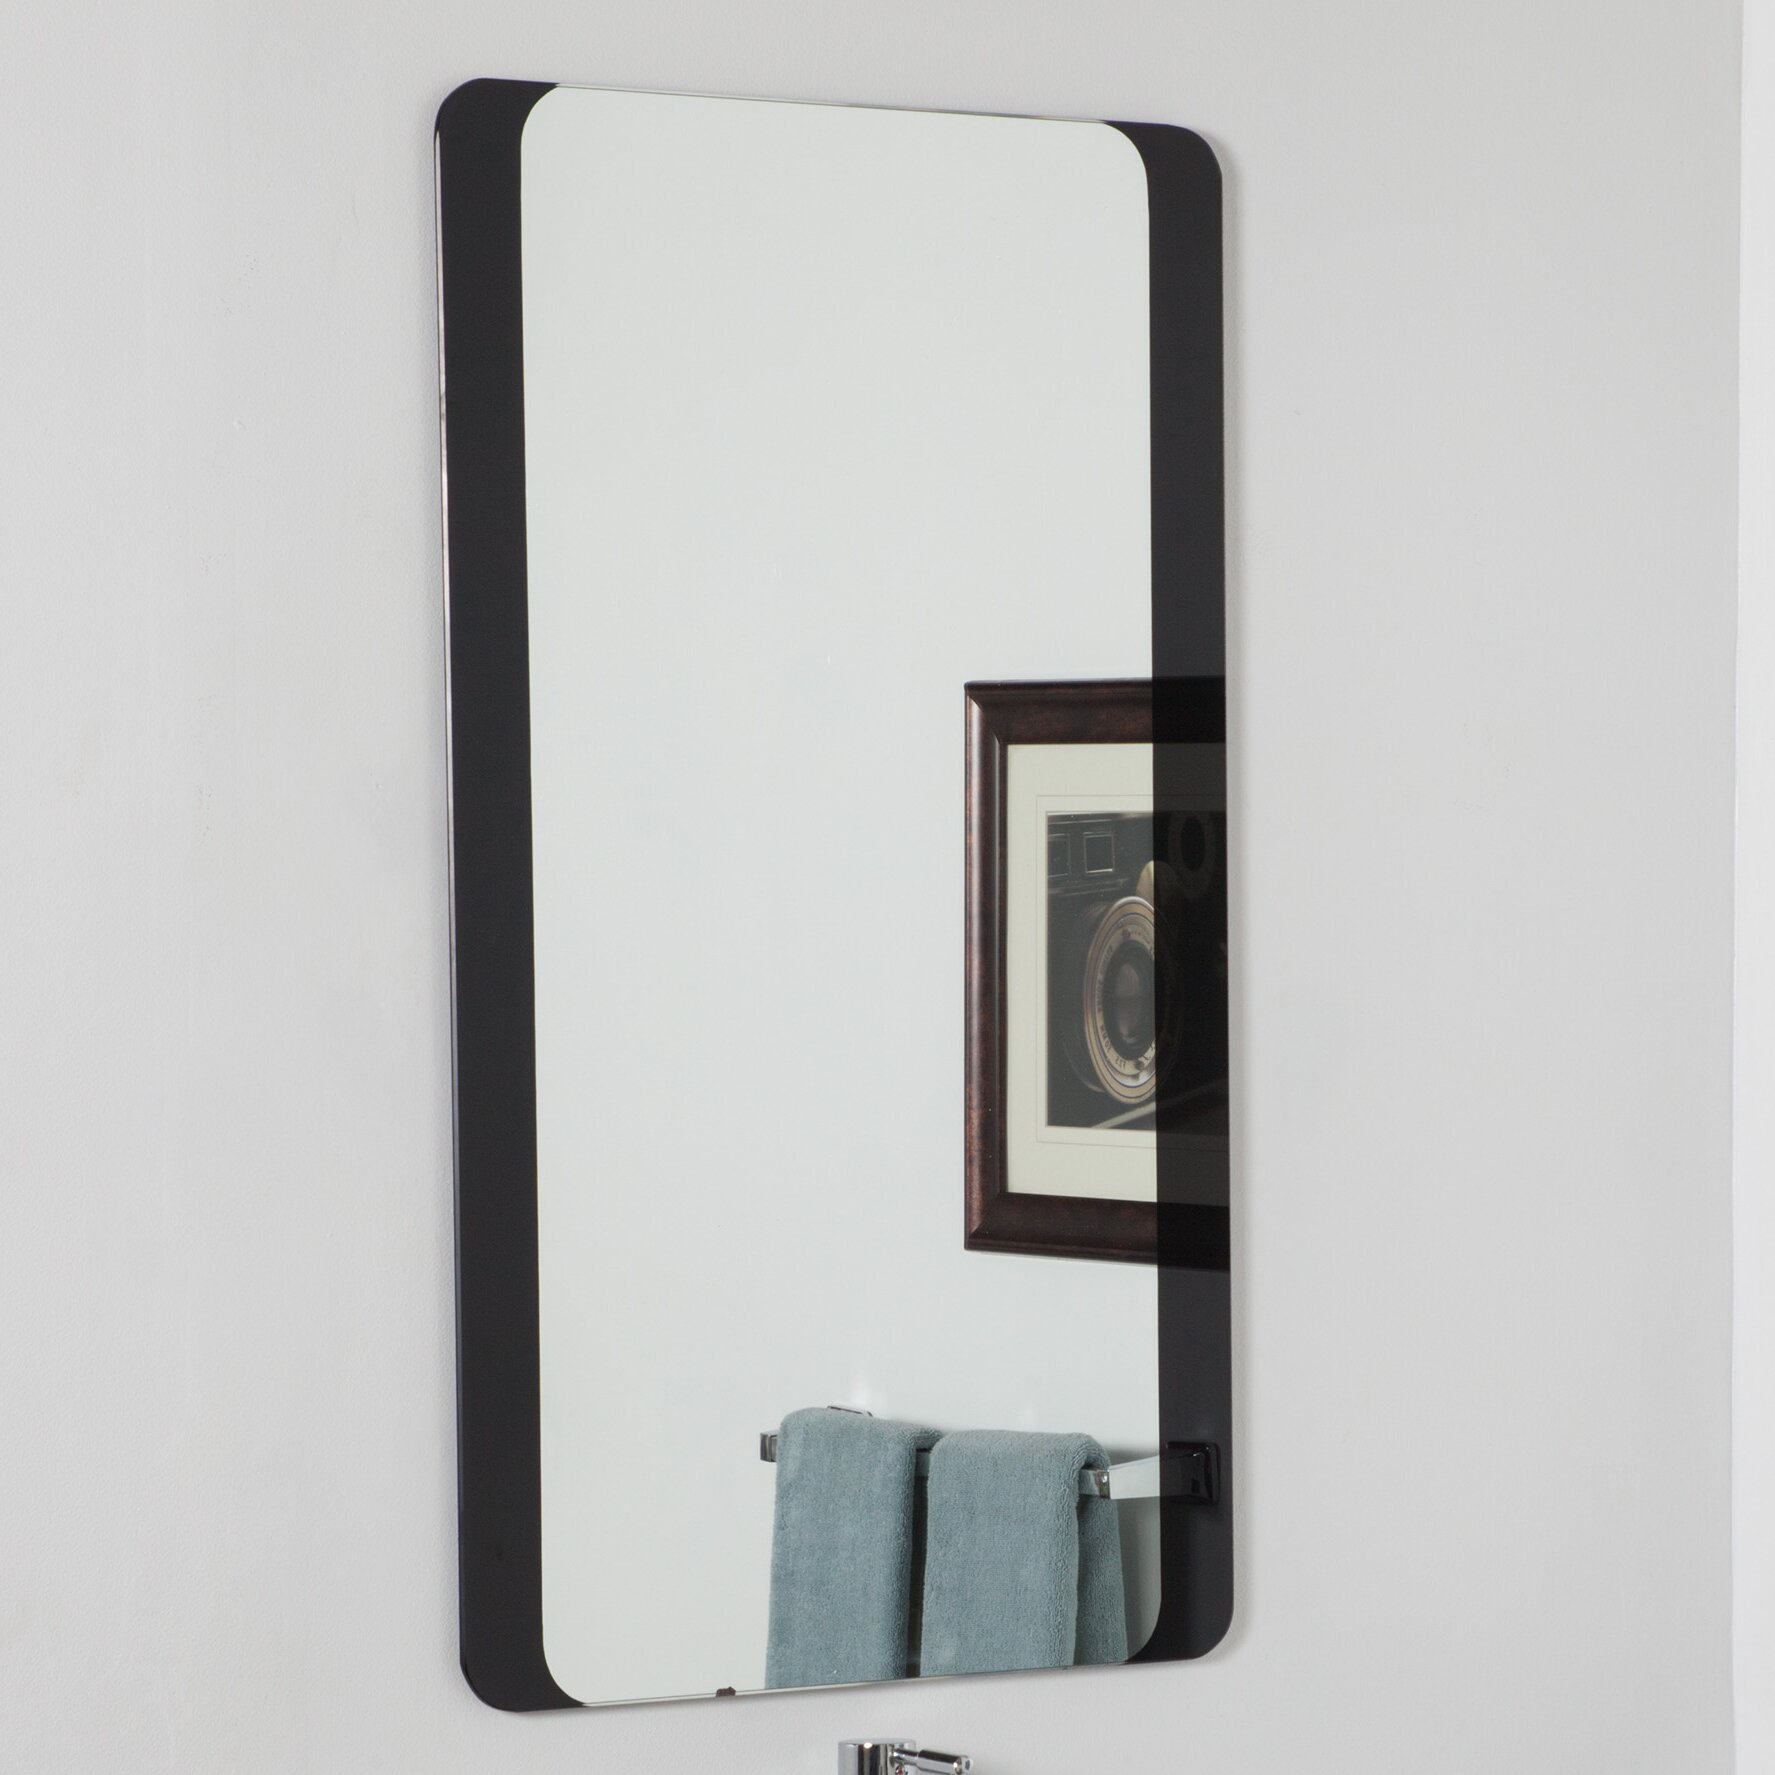 Decor wonderland large wall mirror reviews wayfair Large mirror on wall